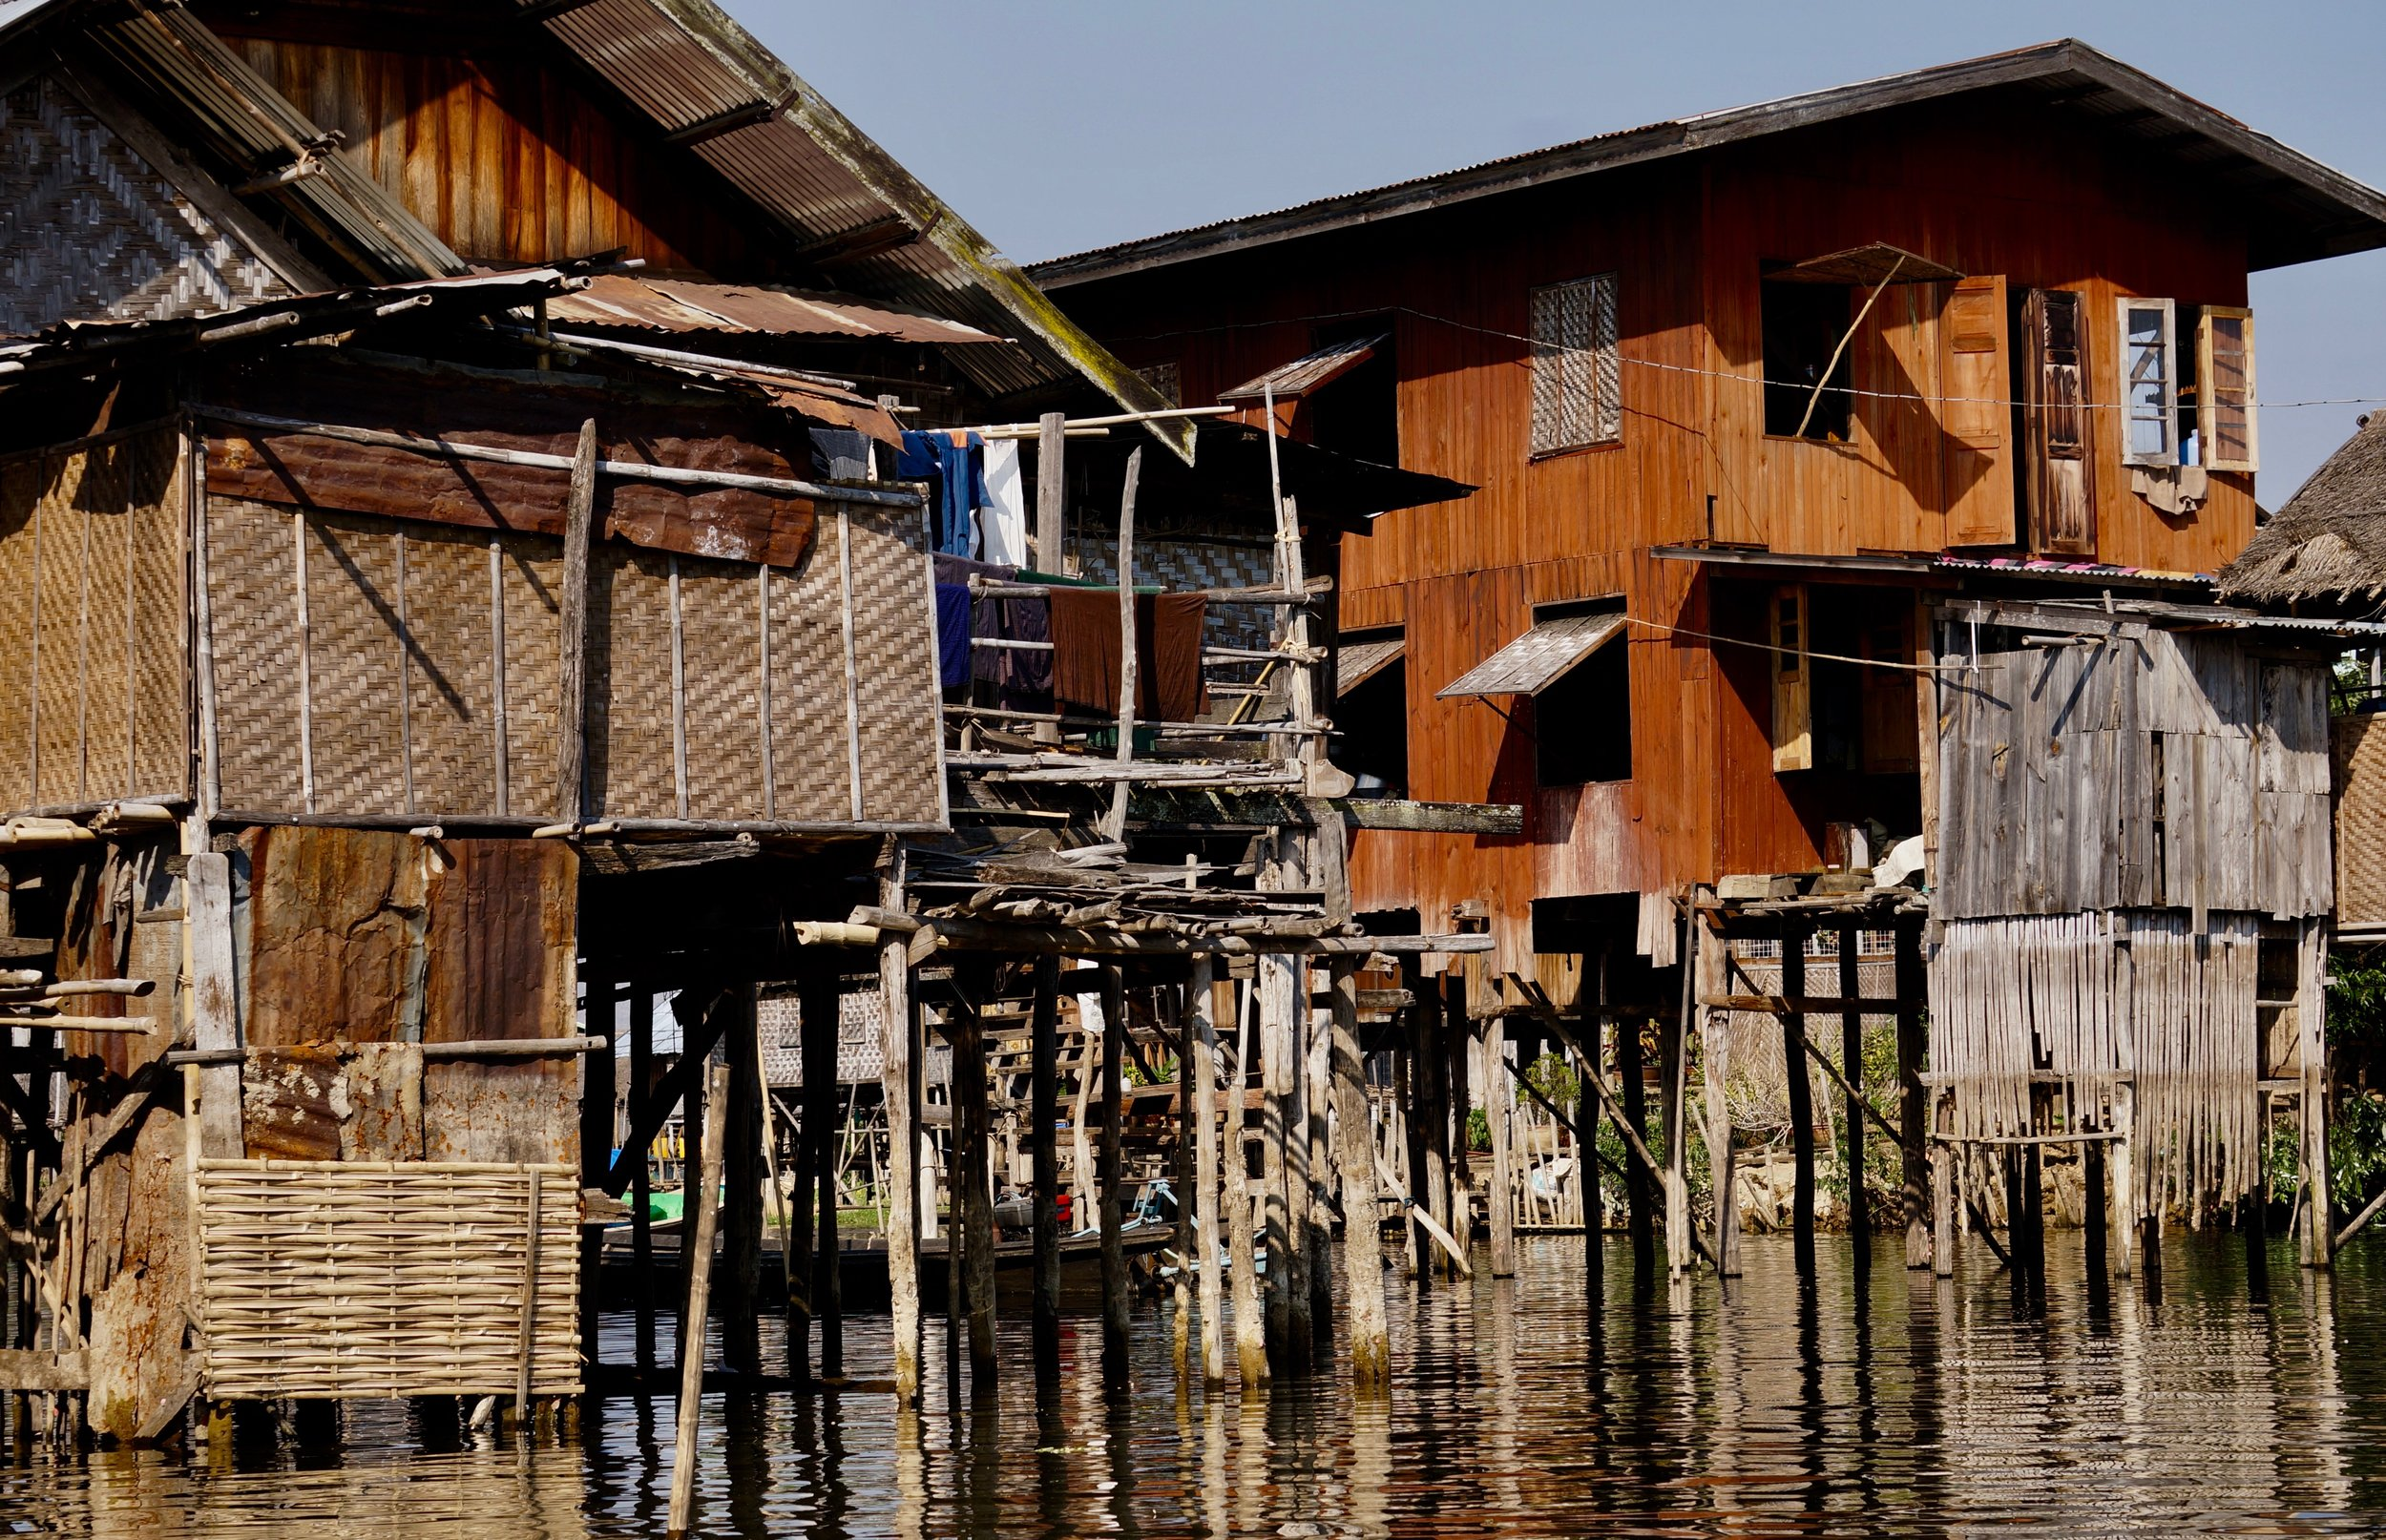 Places-River Houses.jpg